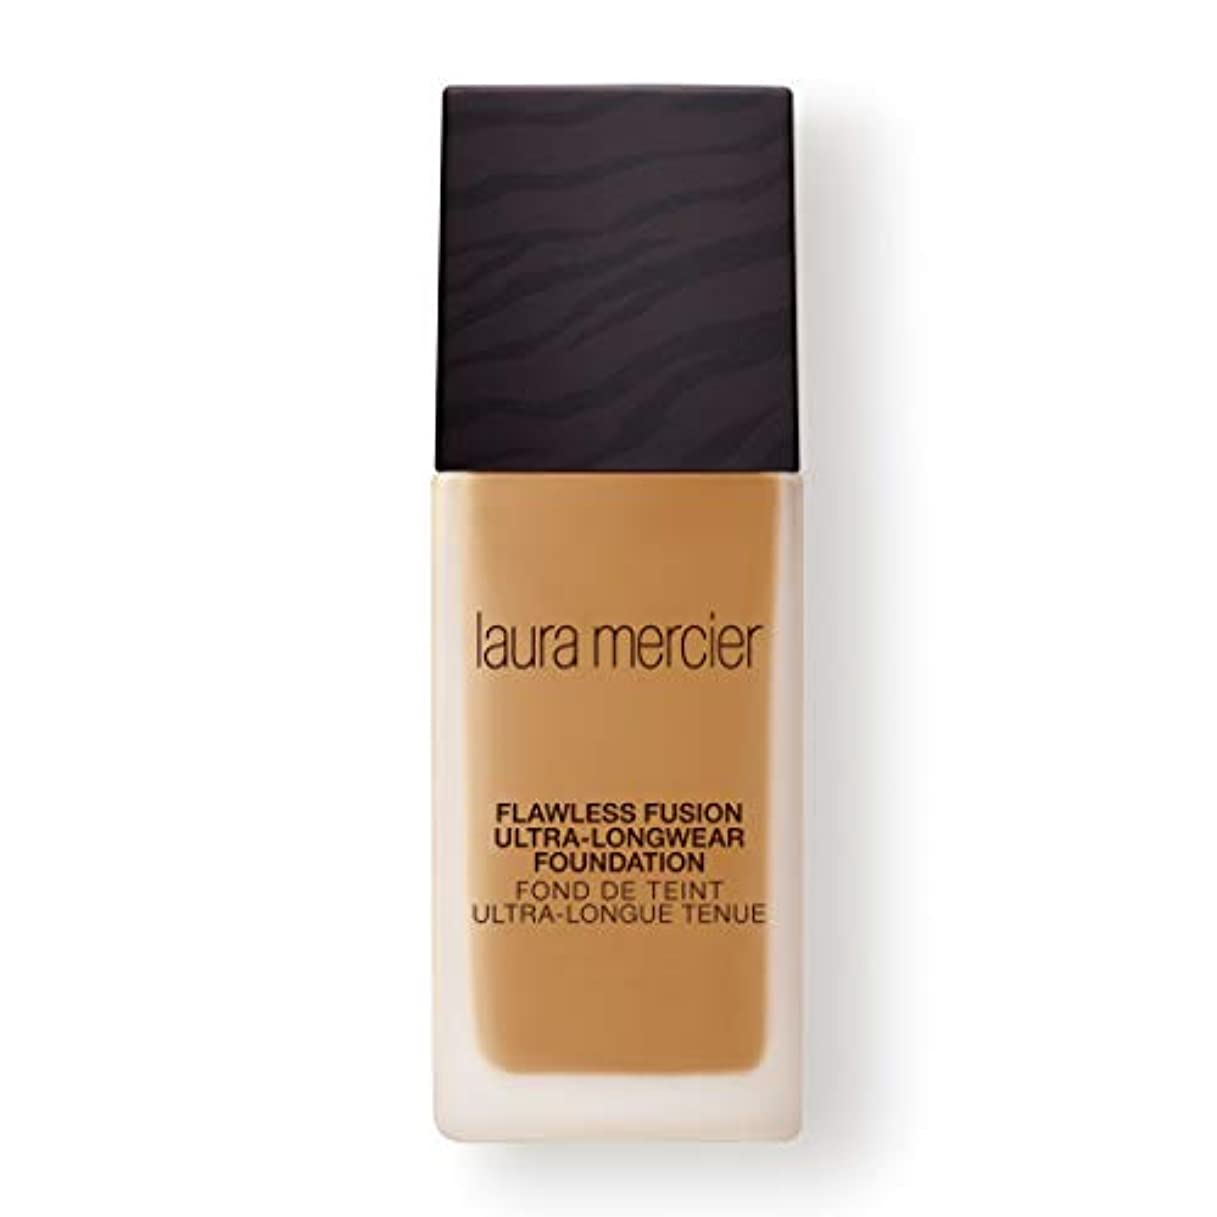 Laura Mercier Flawless Fusion Ultra-Longwear Foundation - Chai 1oz (29ml)